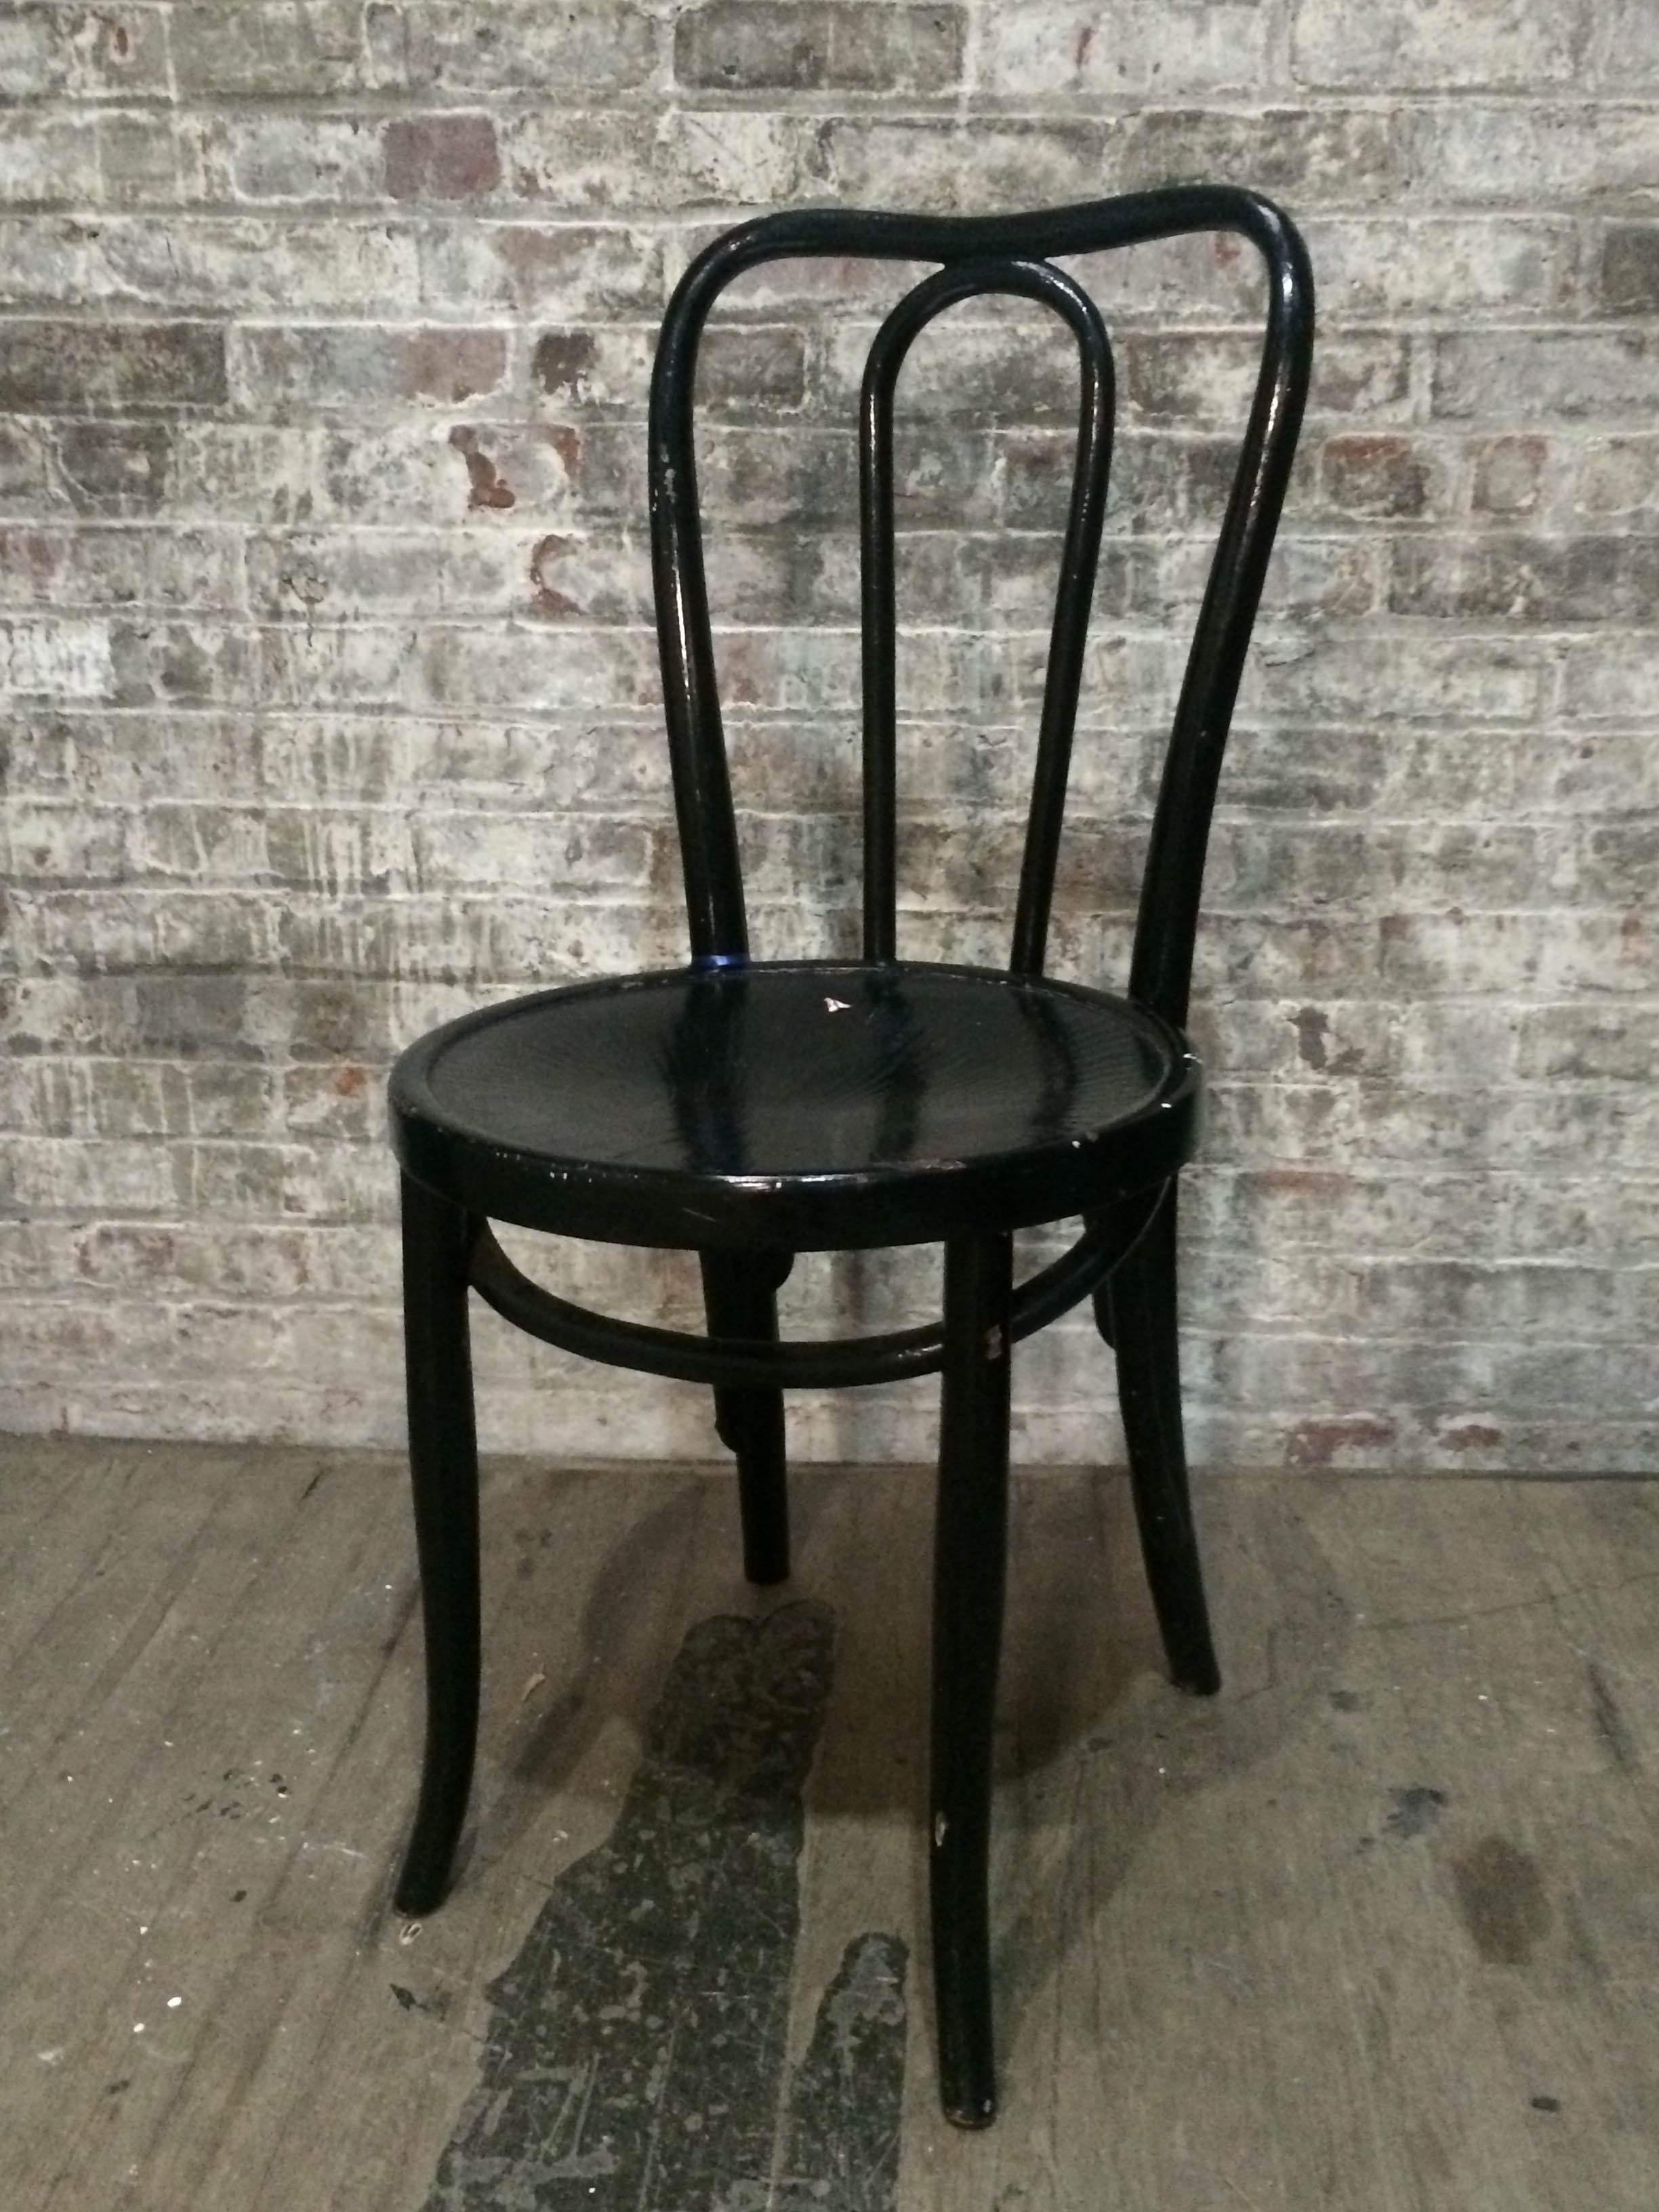 cafe chairs wooden plastic andronik wood seating primate props rss black chair 54